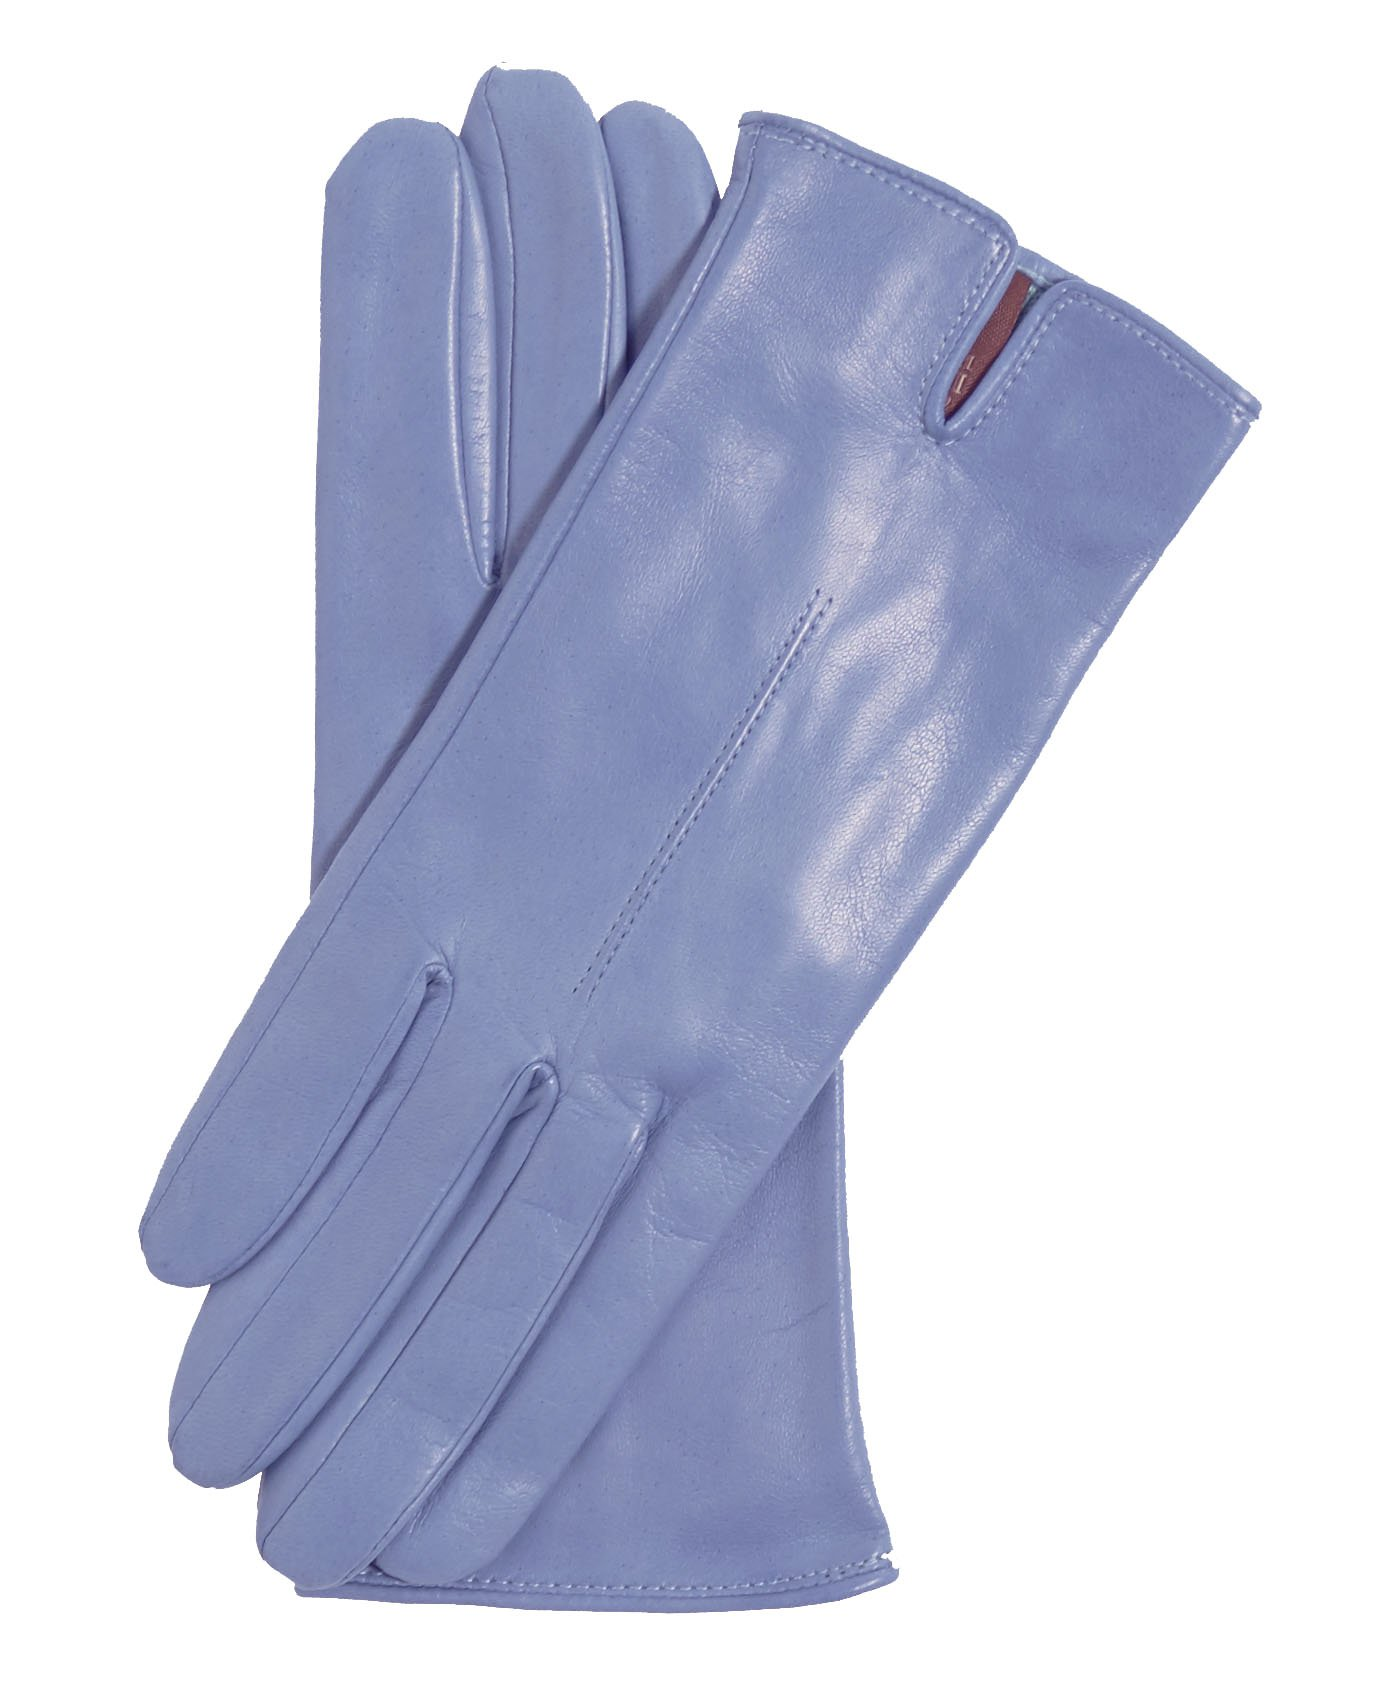 Fratelli Orsini Everyday Women's Italian Silk/Cashmere Lined Leather Gloves Size 7 Color Sky